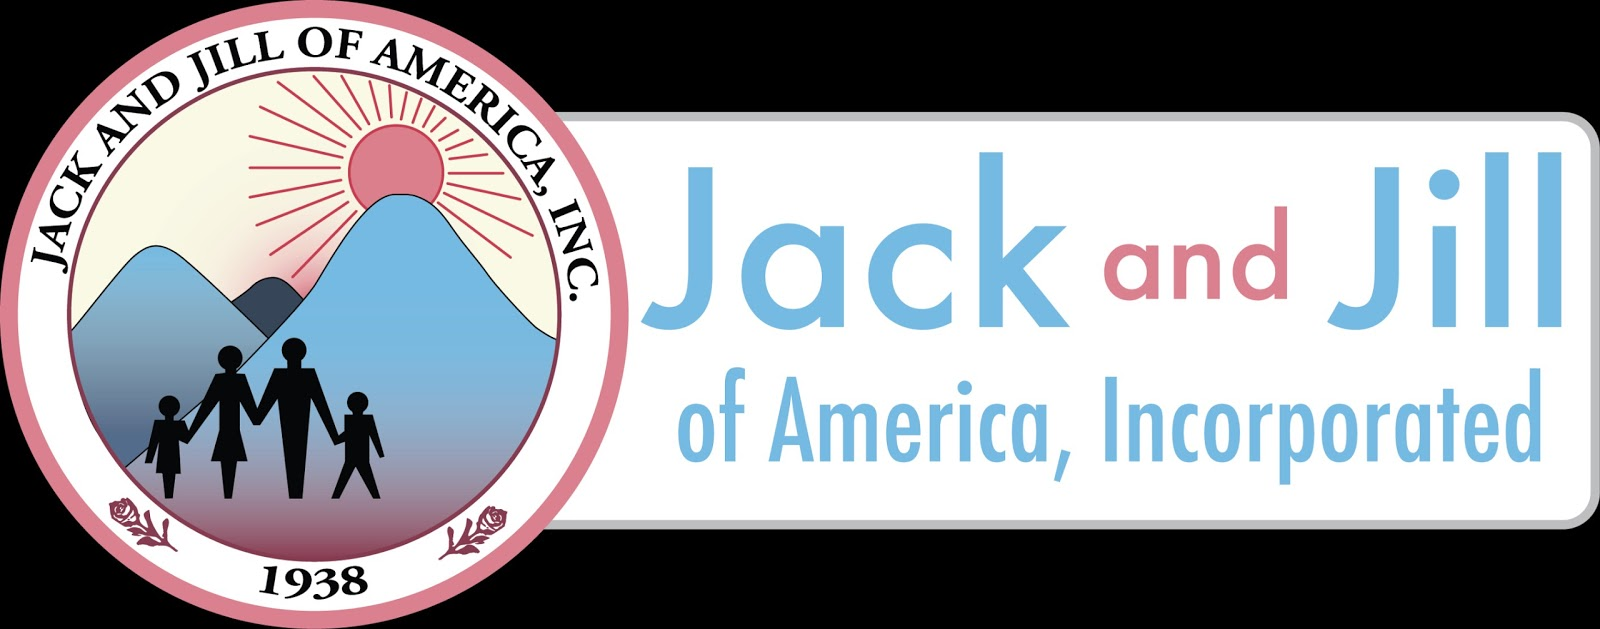 jack and jill of america history